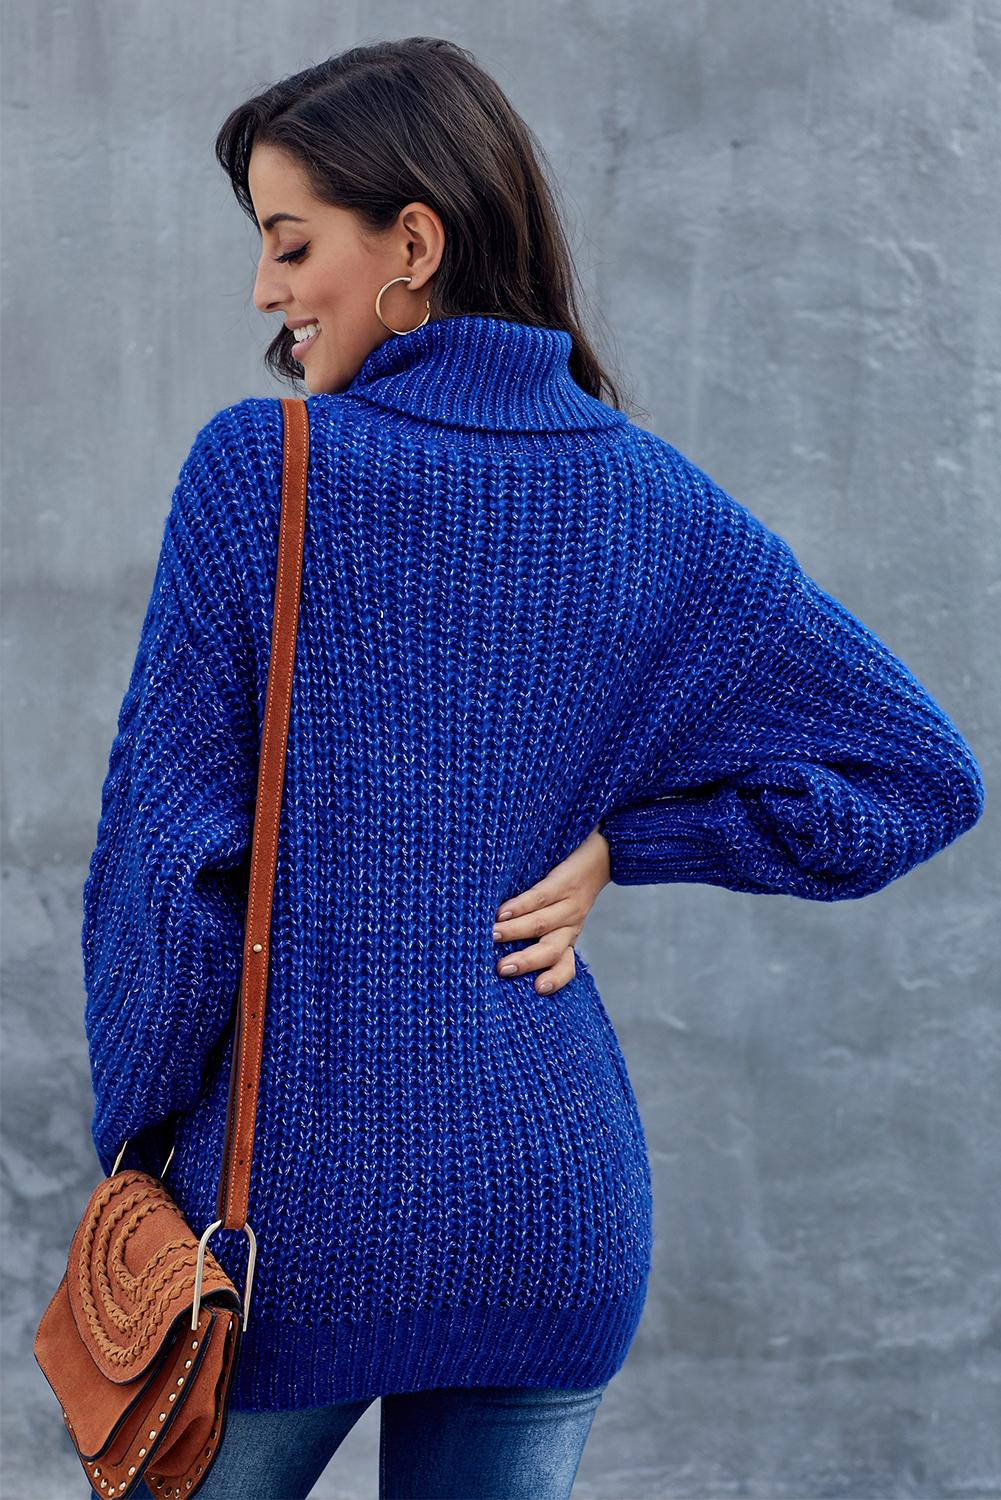 Blue Chunky Turtleneck Sweater Sweaters & Cardigans Discount Designer Fashion Clothes Shoes Bags Women Men Kids Children Black Owned Business